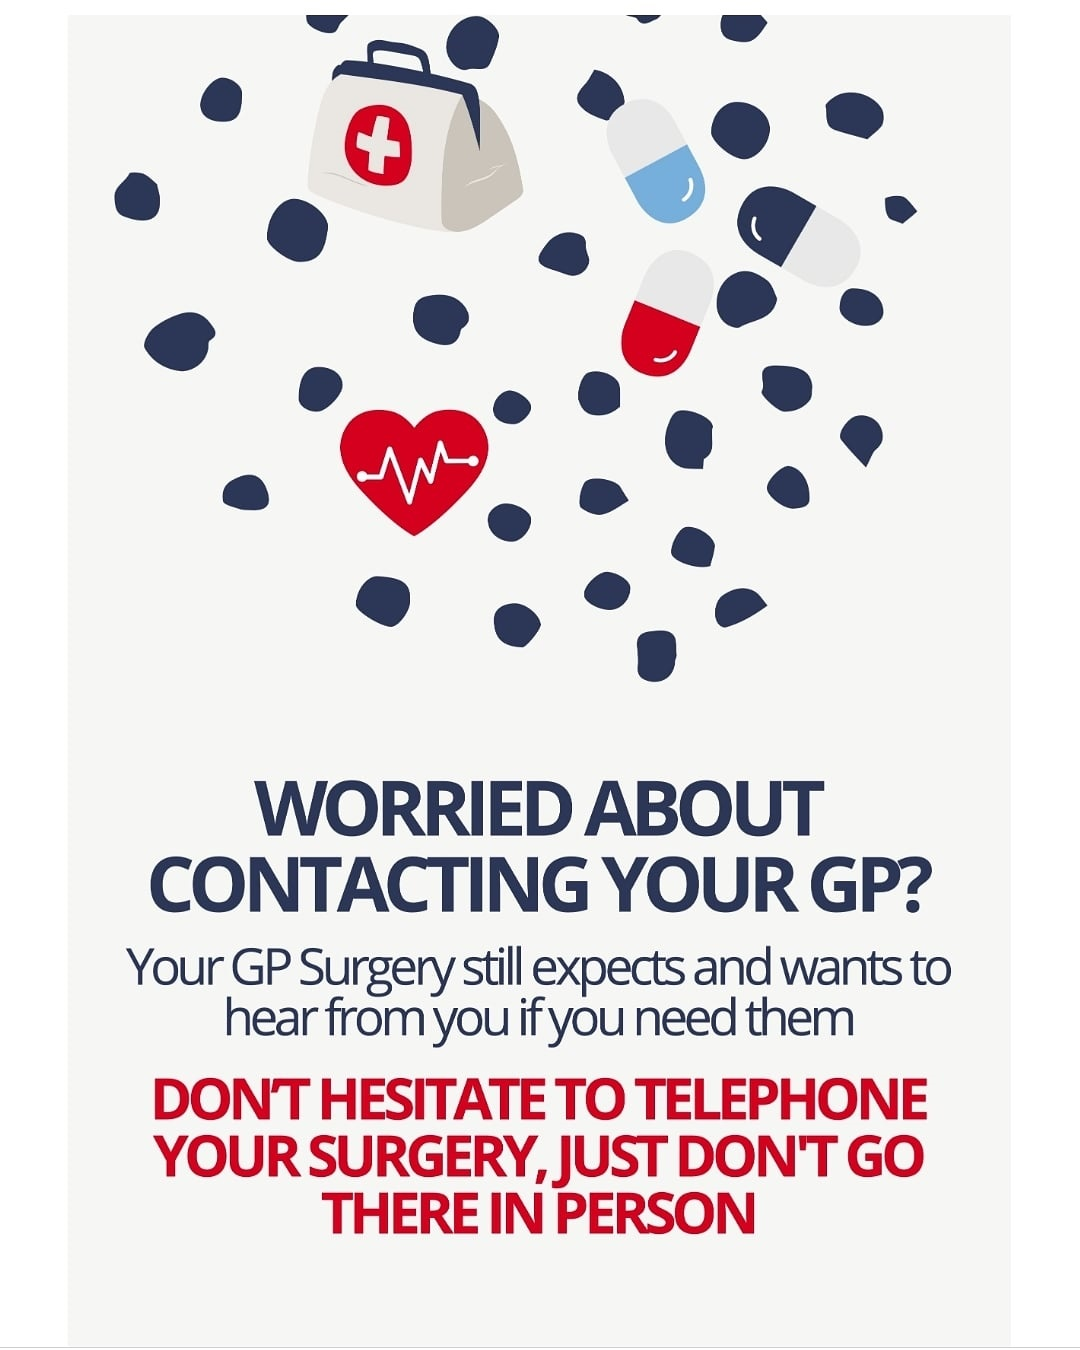 Worried about contacting your GP?